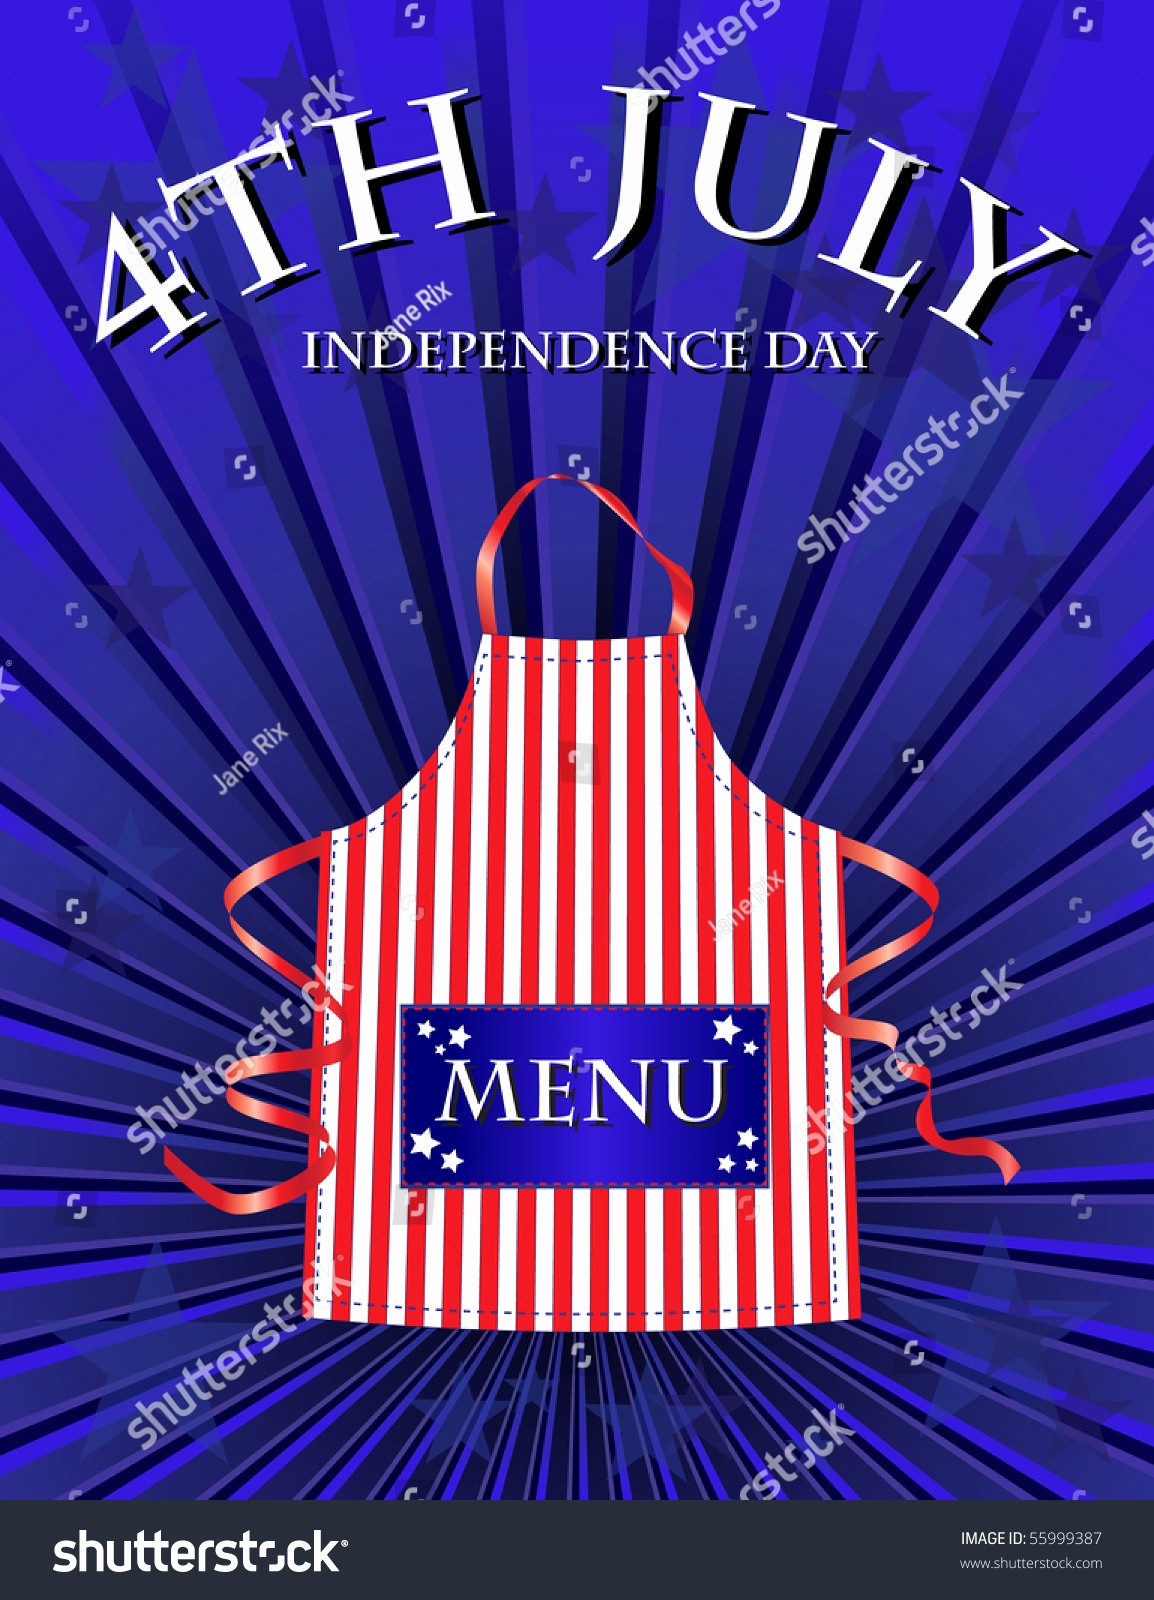 4th Of July Menu Template Awesome A 4th July Independence Day Menu Template Stock